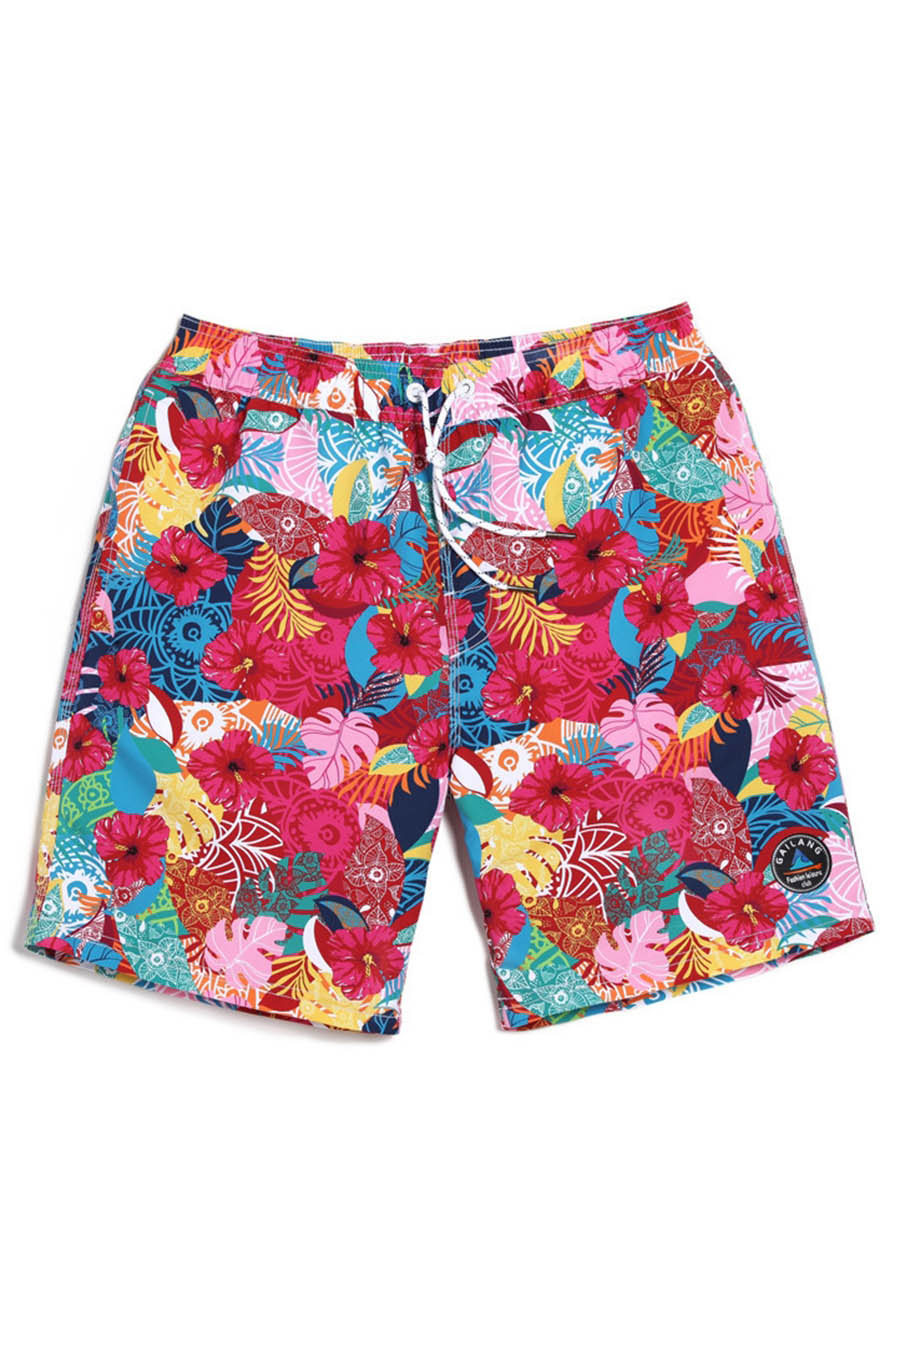 A| Chicloth Floral Print Men's Swim Trunks Water Shorts Swimwear Casual Beach Shorts